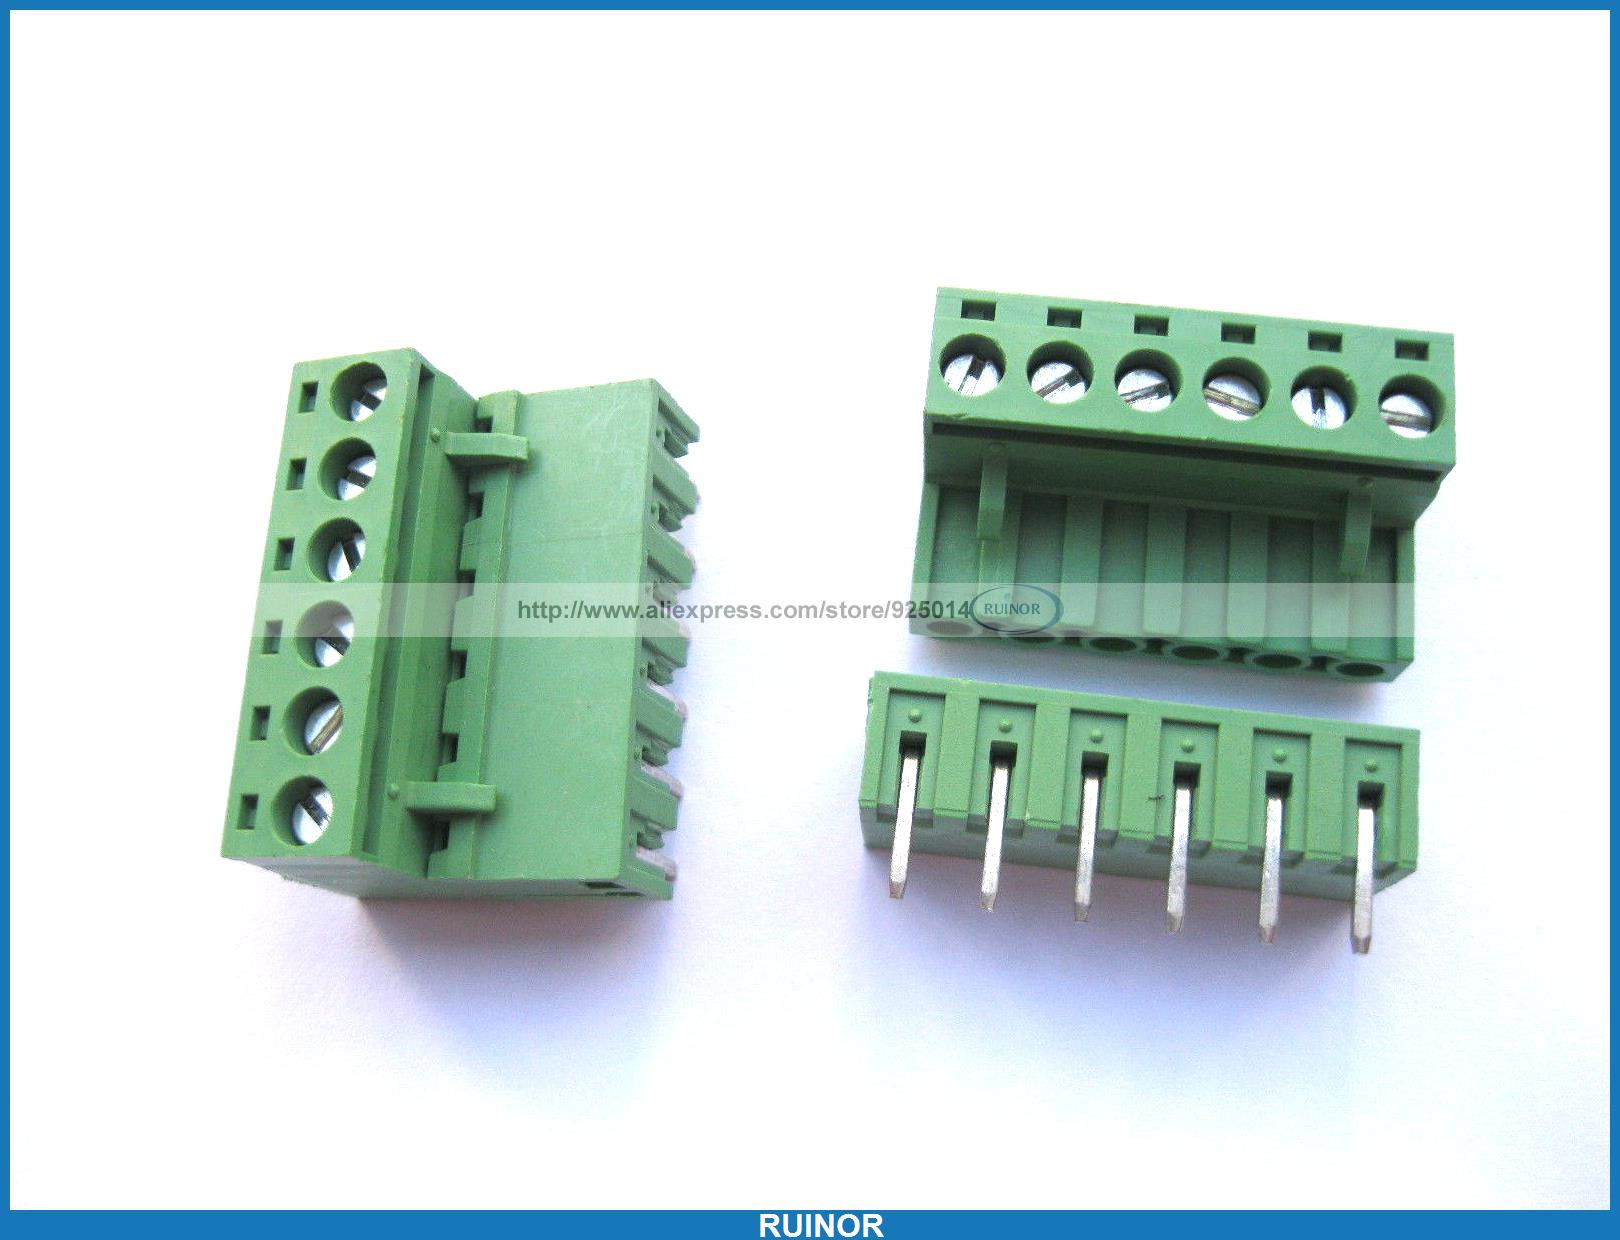 50 Pcs 5 08mm Angle 6 Pin Screw Terminal Block Connector Pluggable Type Green 1825242[pluggable terminal blocks 14 pos 5 08mm pitch thru h mr li